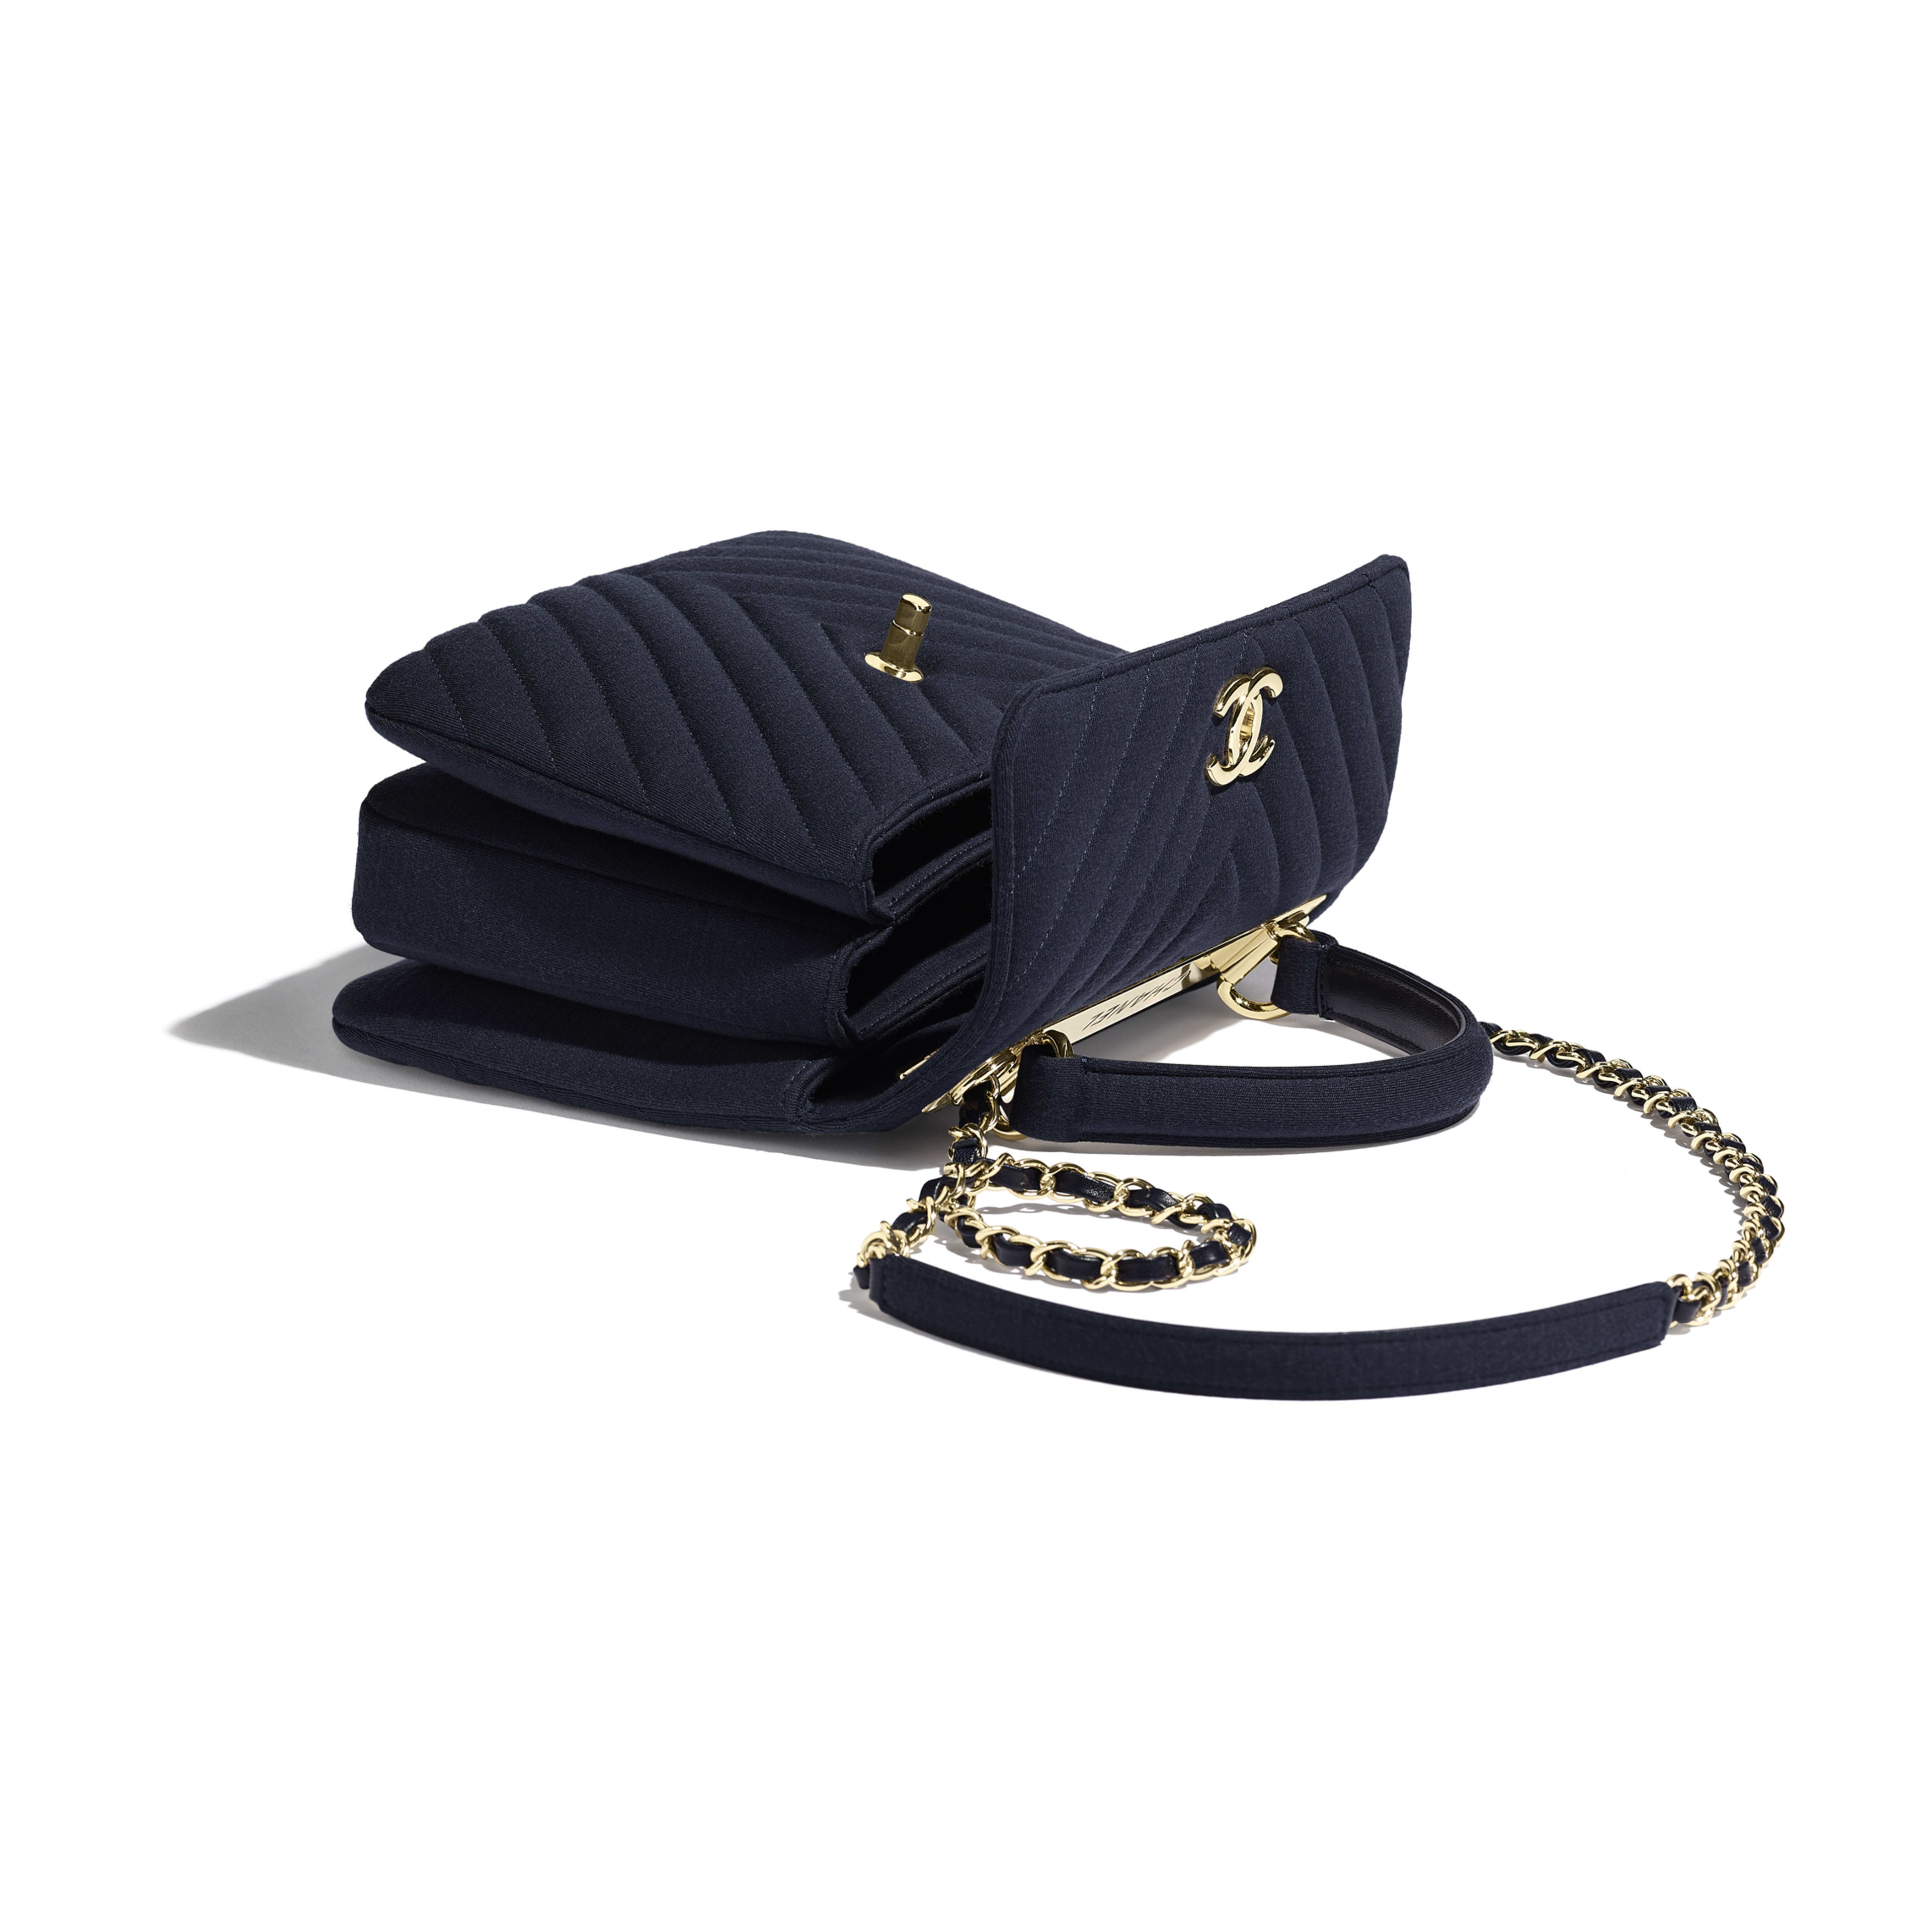 Small Flap Bag with Top Handle - Navy Blue - Jersey & Gold-Tone Metal - Other view - see full sized version